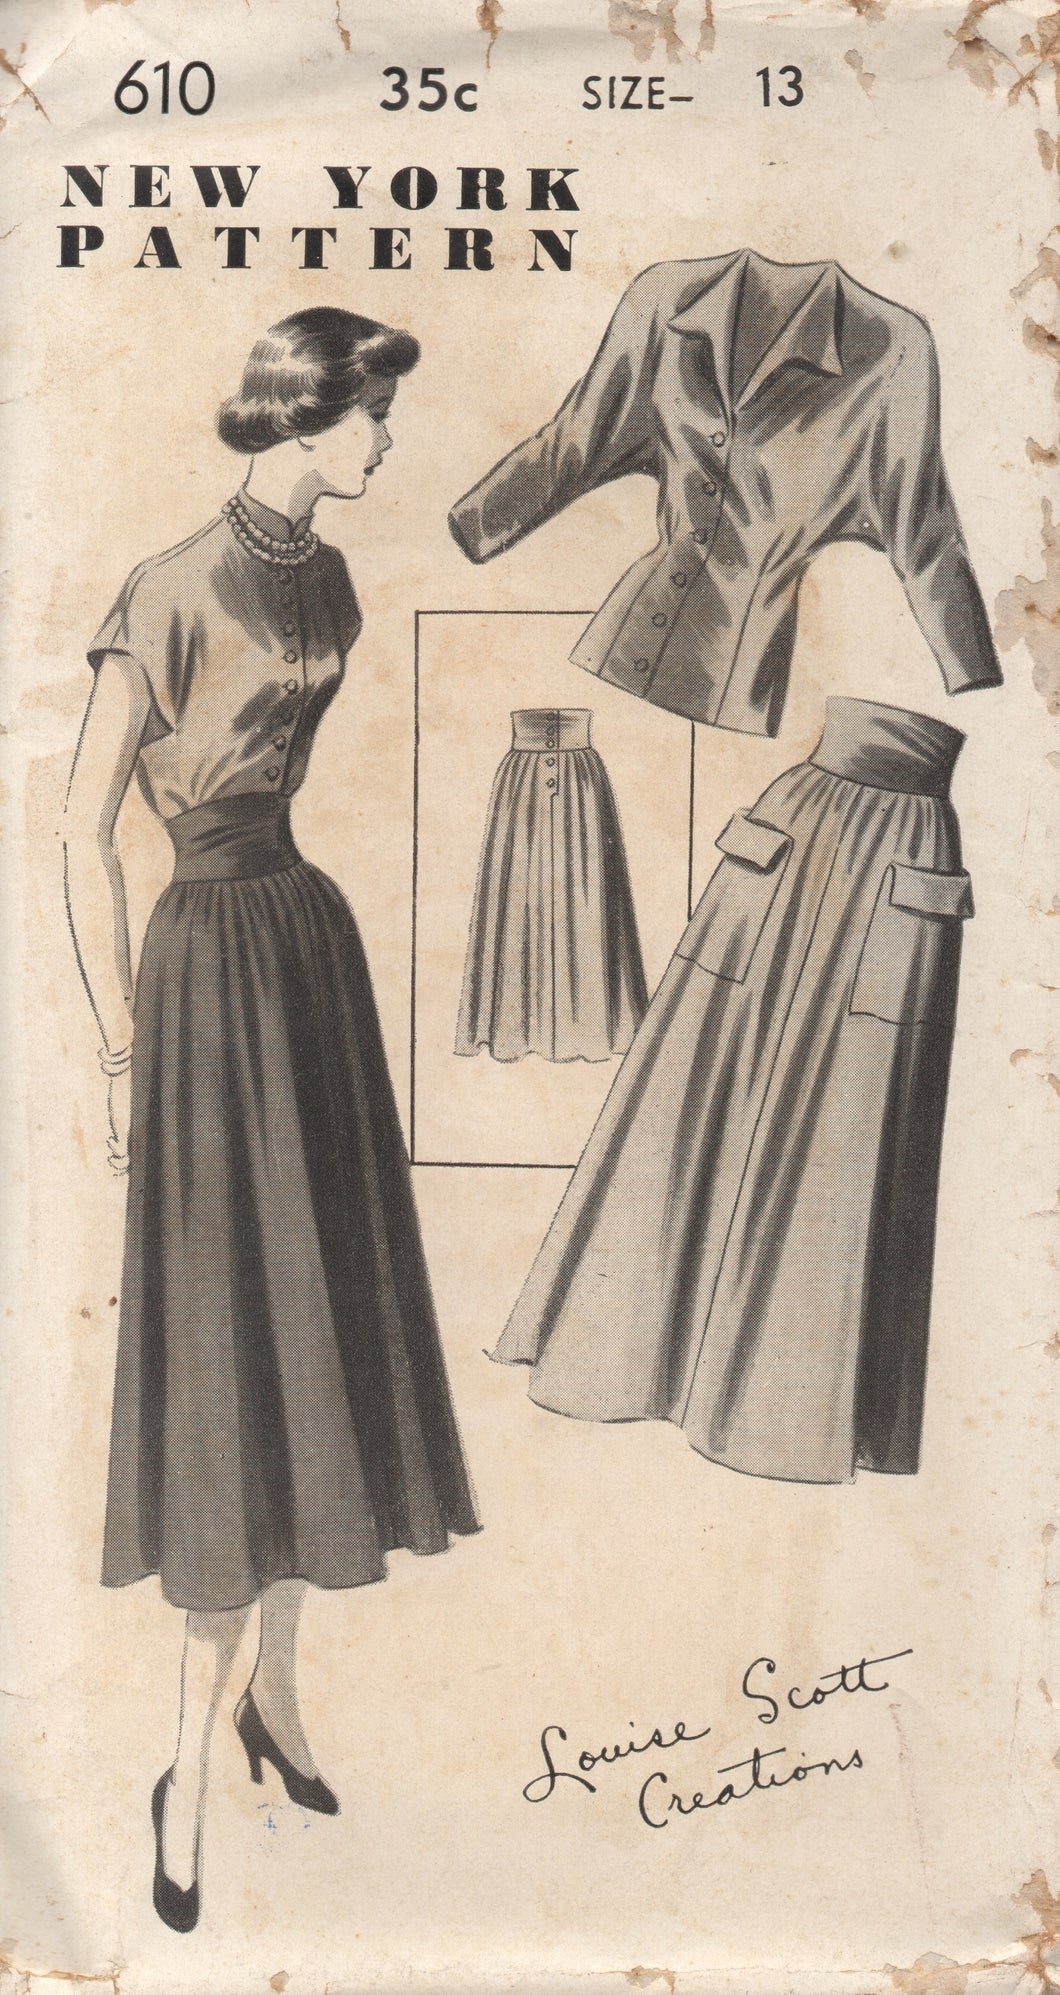 1950's New York by Louise Scott Blouse with Dolman or Cap Sleeves and High Waisted Skirt - Bust 31